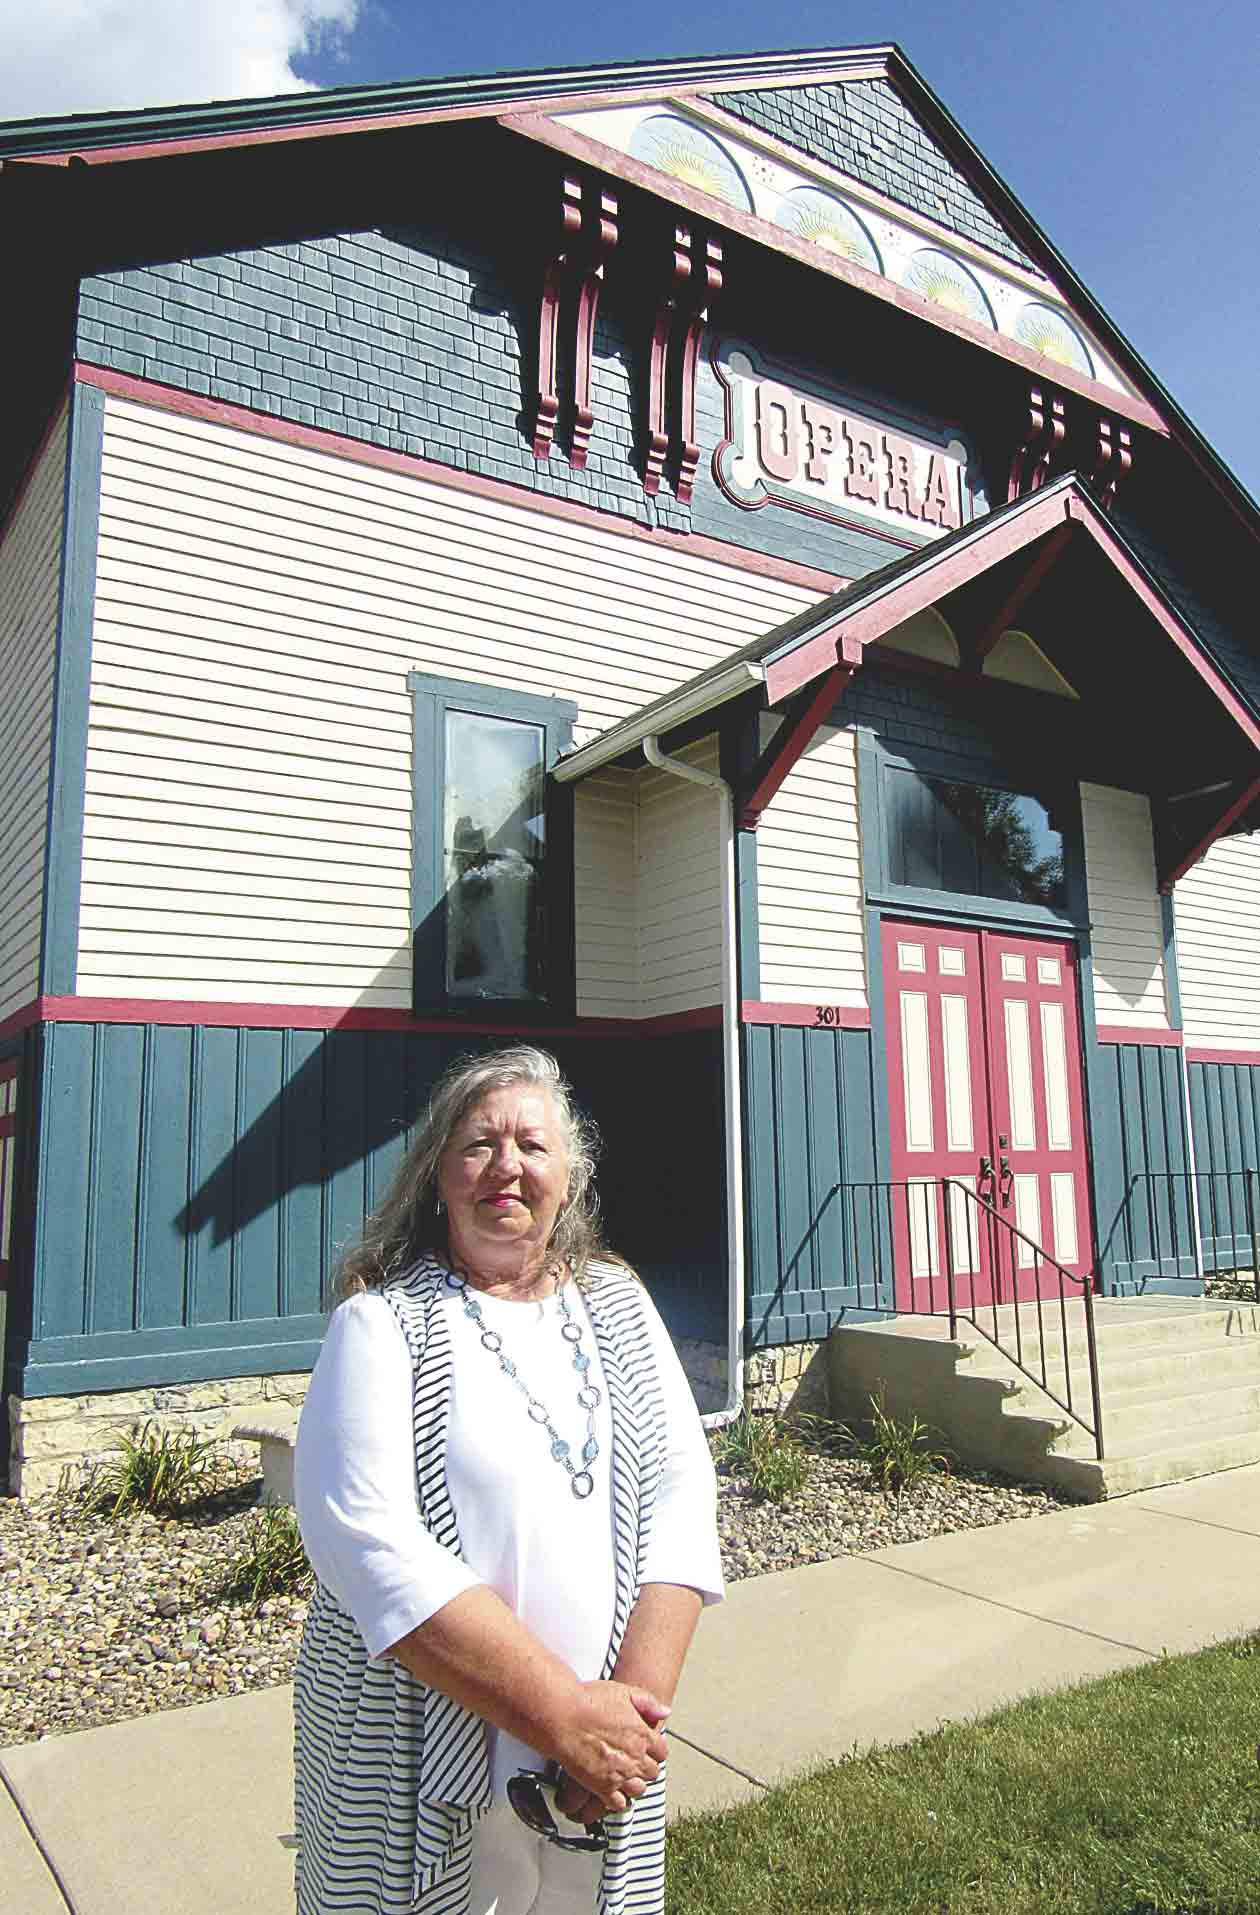 Bonnie Bishop, volunteer for the Fayette County Tourism Council, will be the guide for the 'Music on the Move' bus tour to three historic sites, including Oelwein Coliseum, Clermont Opera House and Fayette Opera House (pictured) in Fayette County on Sunday, Sept. 23. Call Carrie...